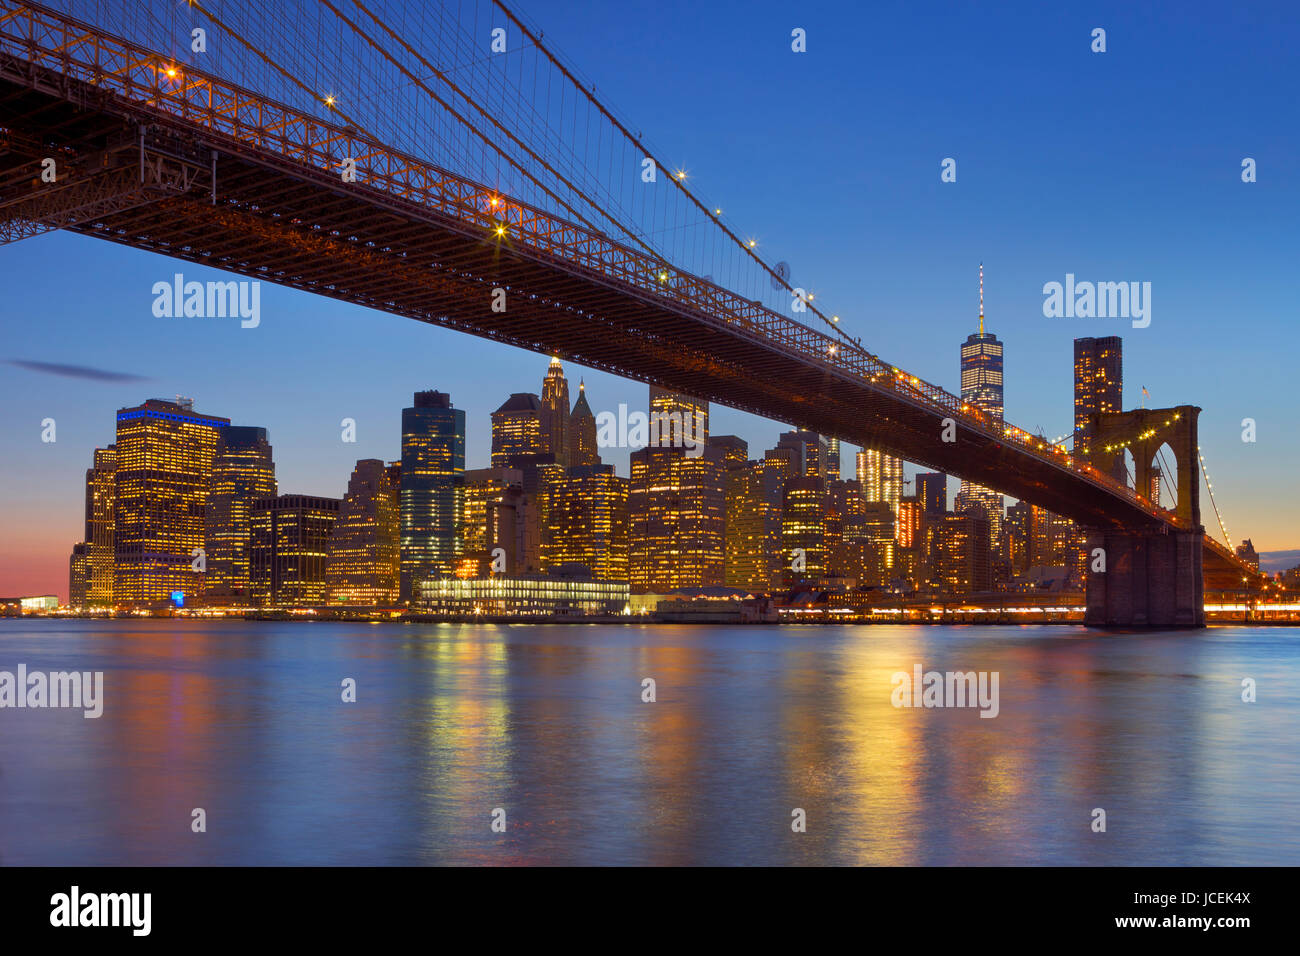 Brooklyn Bridge with the New York City skyline in the background, photographed at dusk. - Stock Image